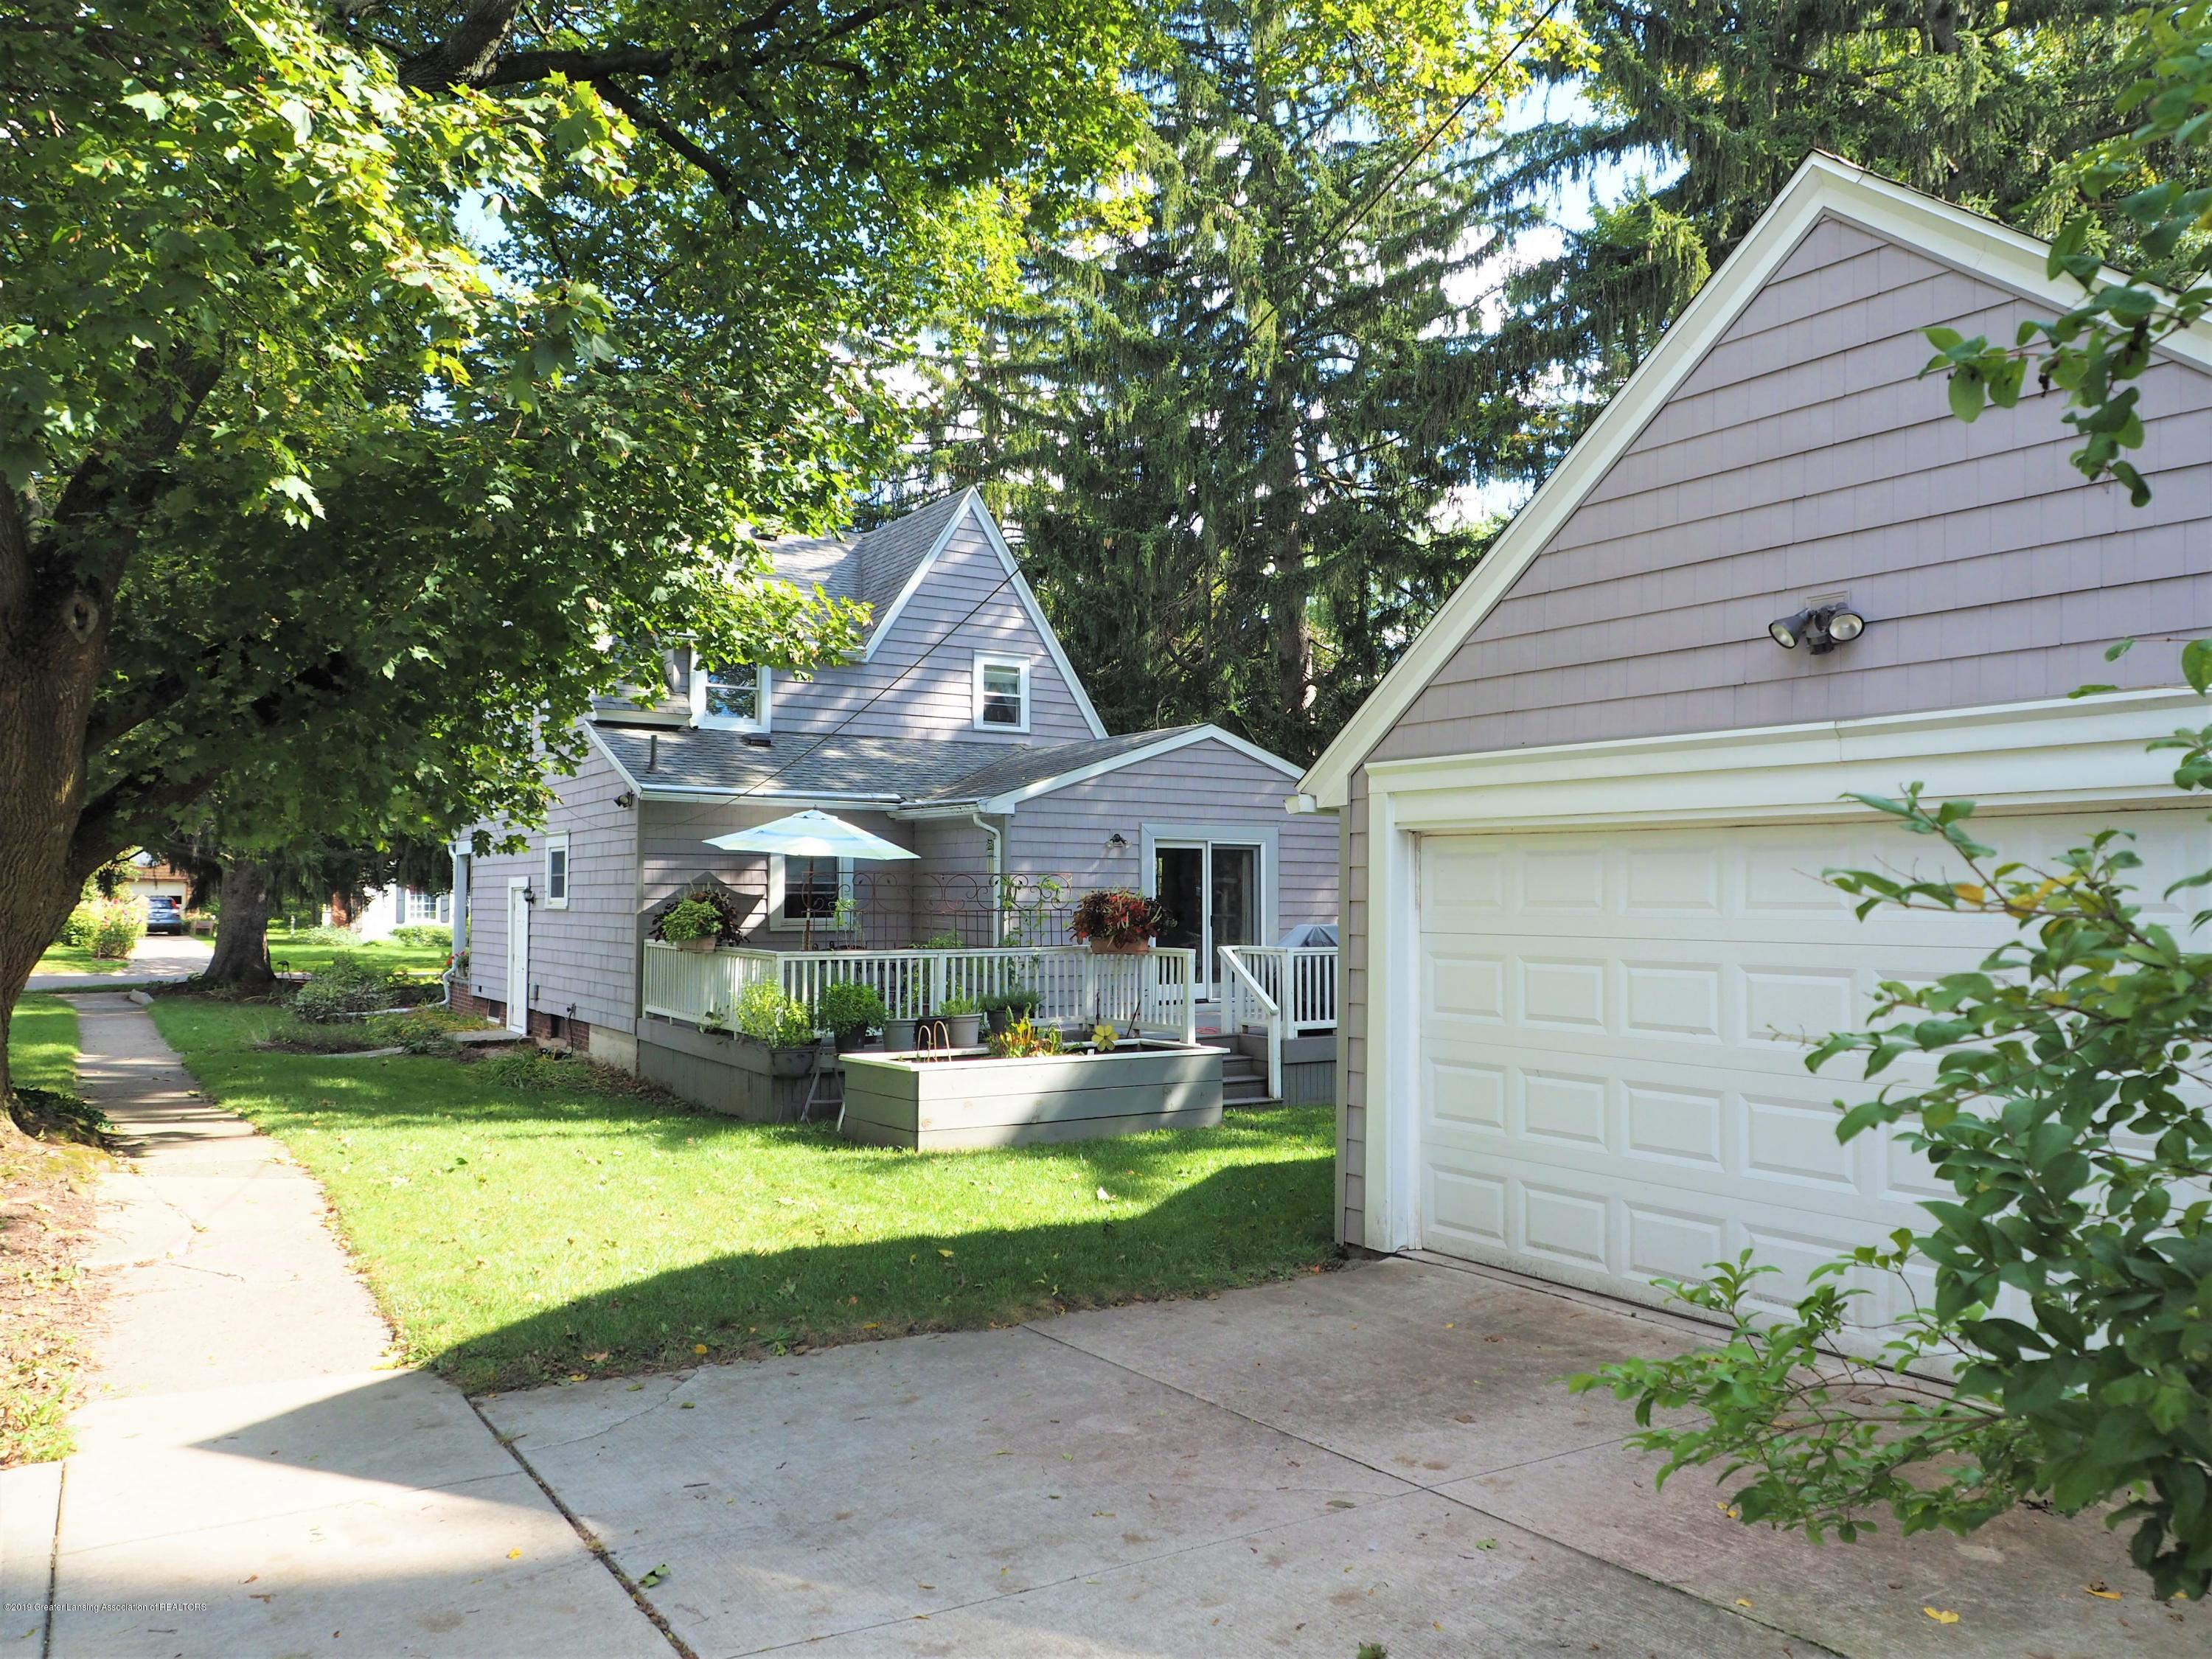 343 Cowley Ave - P1011463 - 34